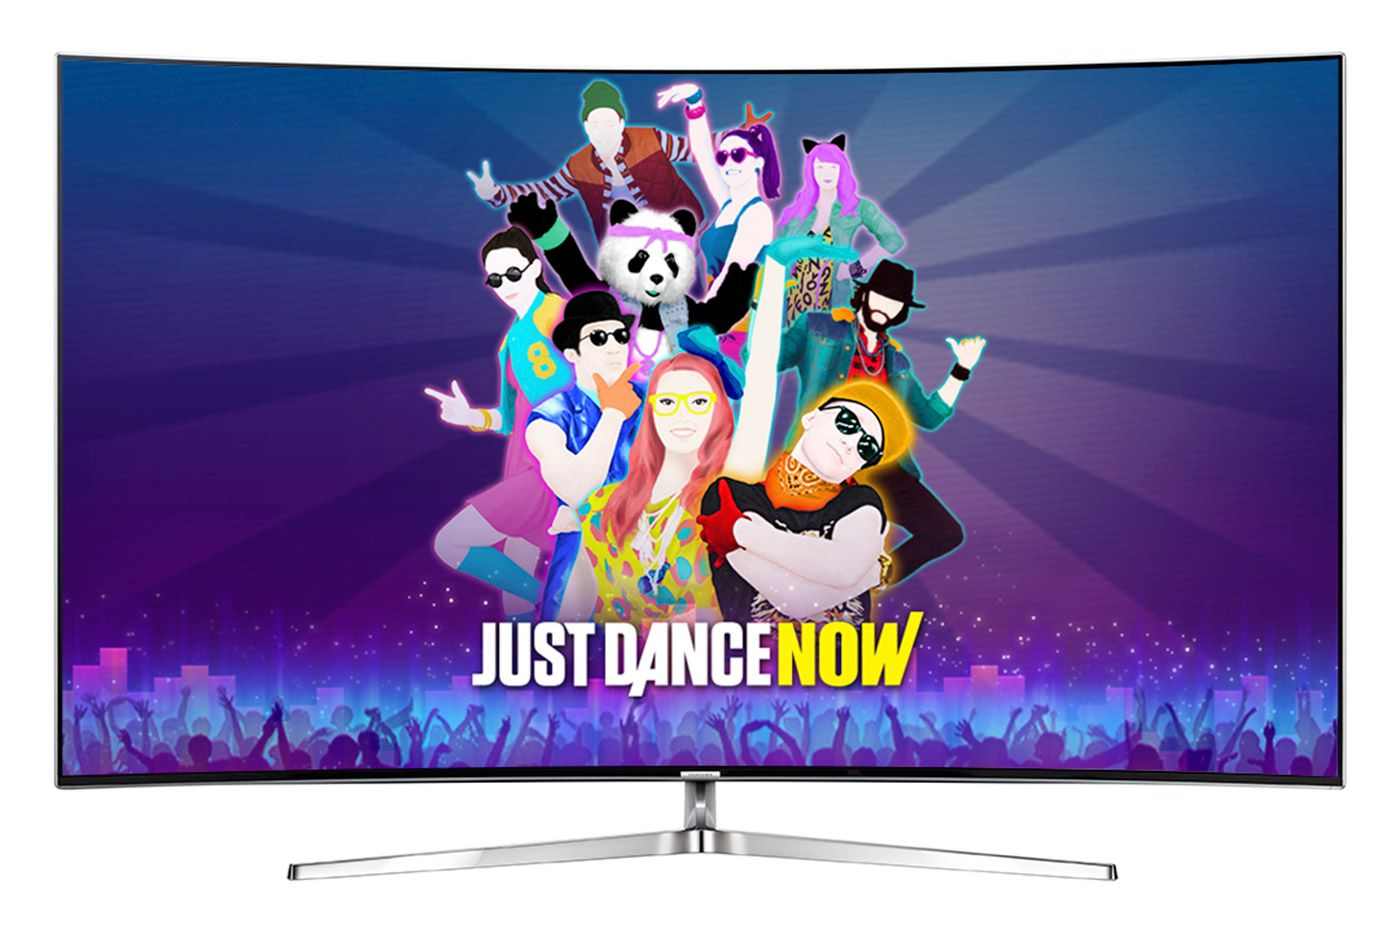 Samsung adds 'Just Dance Now' to its smart TV hub | Best 4K